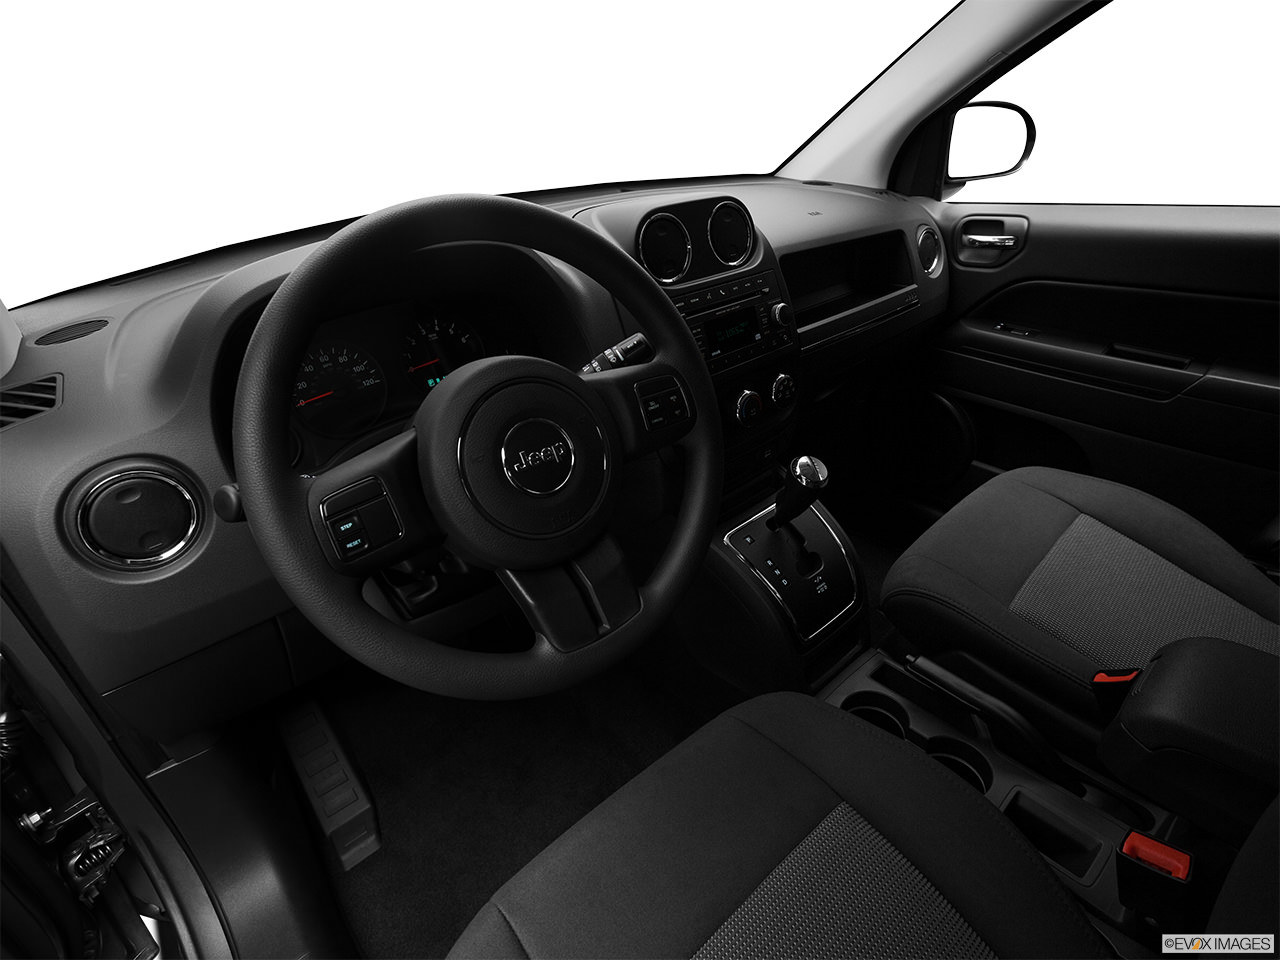 Jeep Compass 2012 Interior